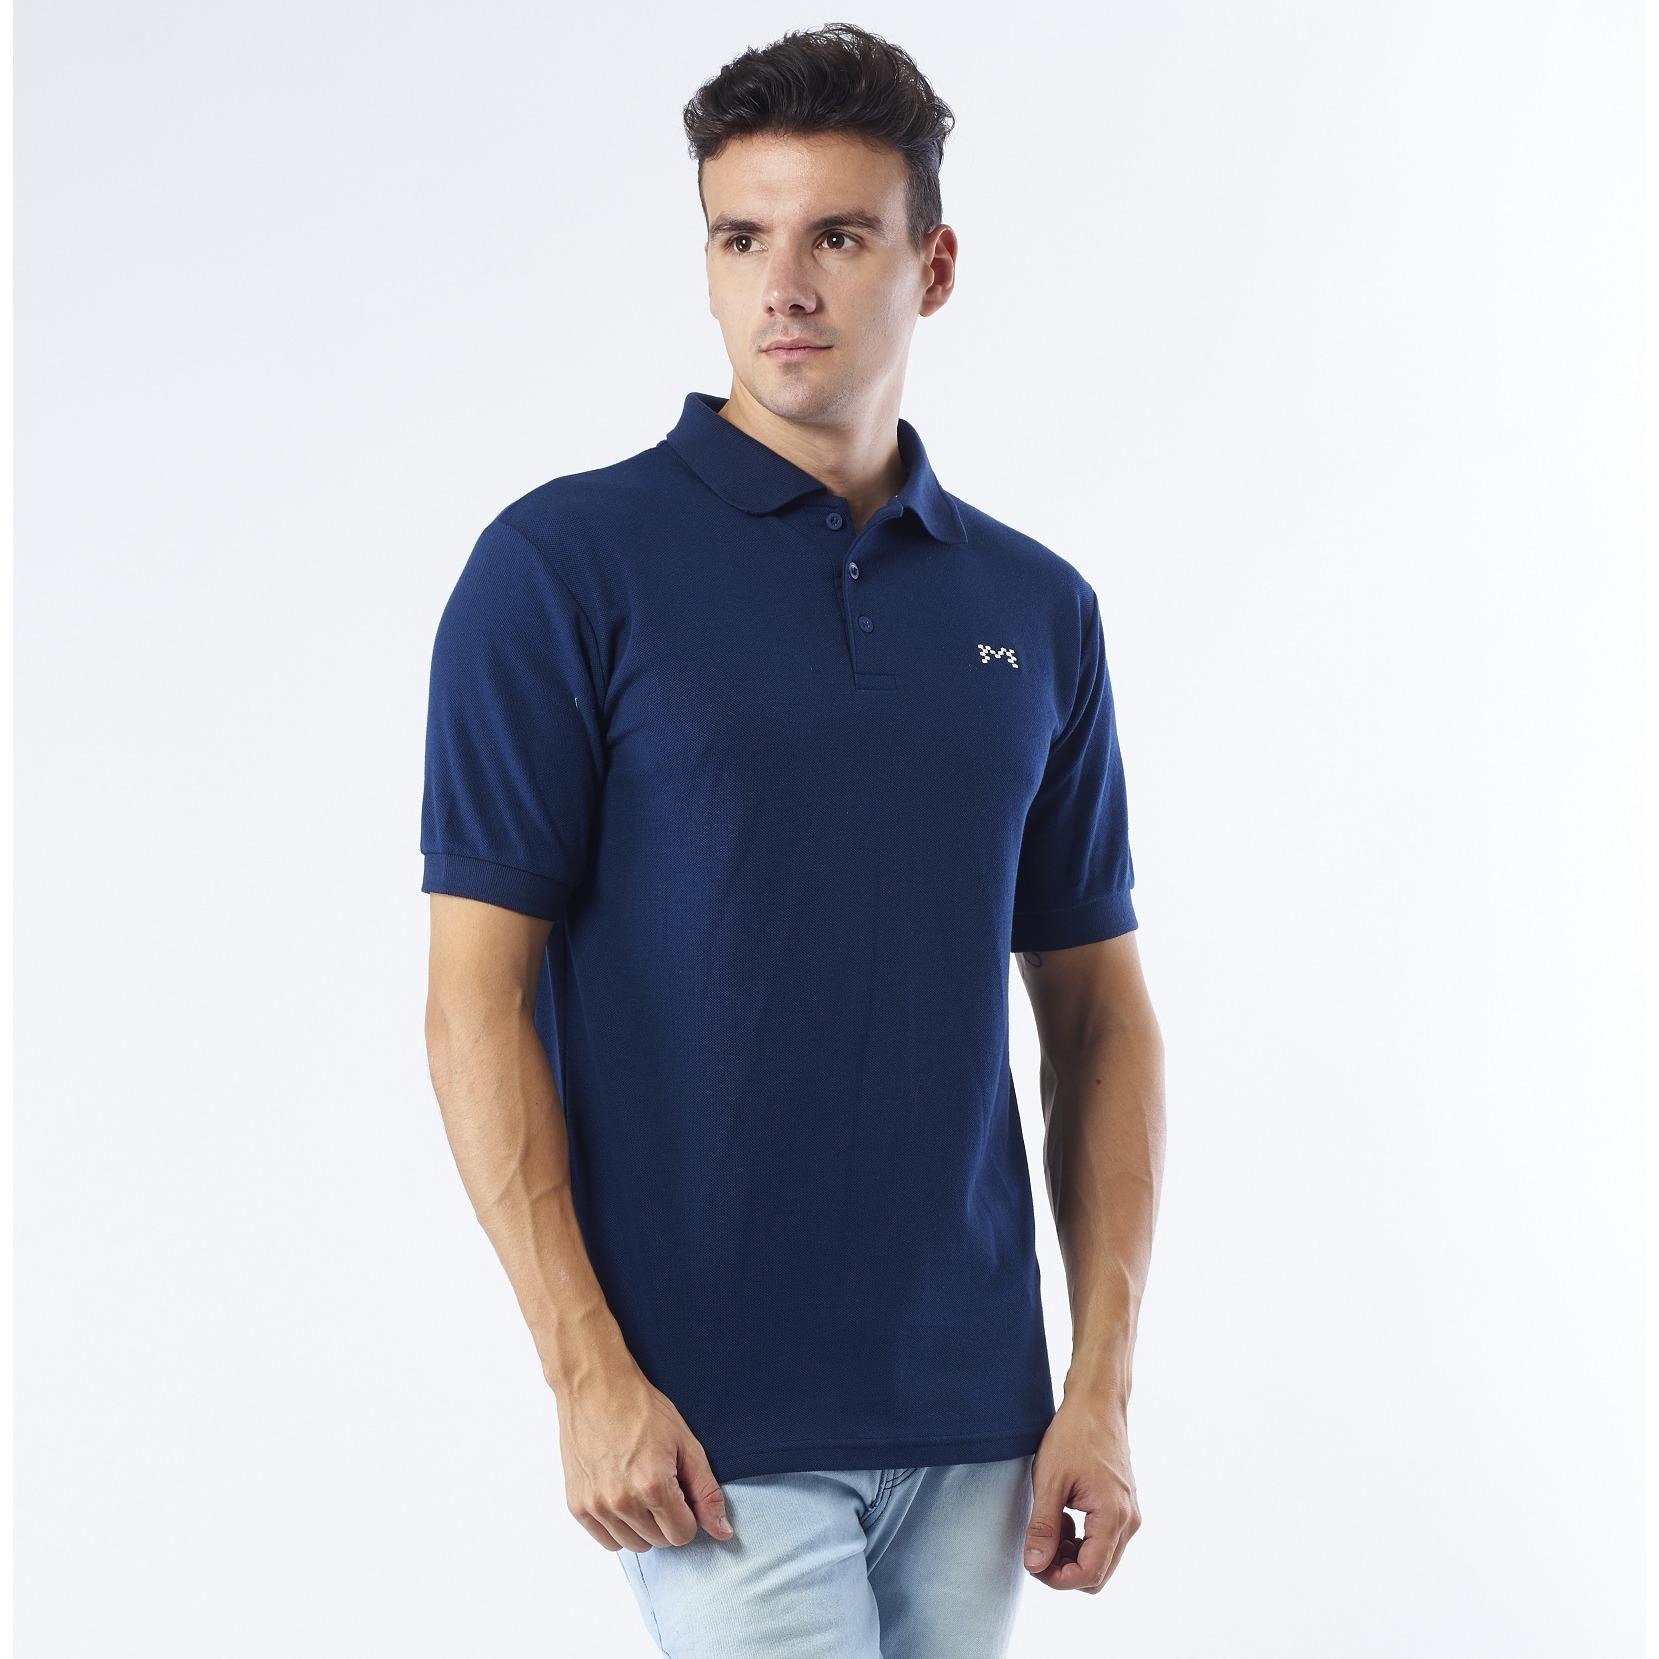 Promo Toko Mark Inc Polo Shirt Navy Blue